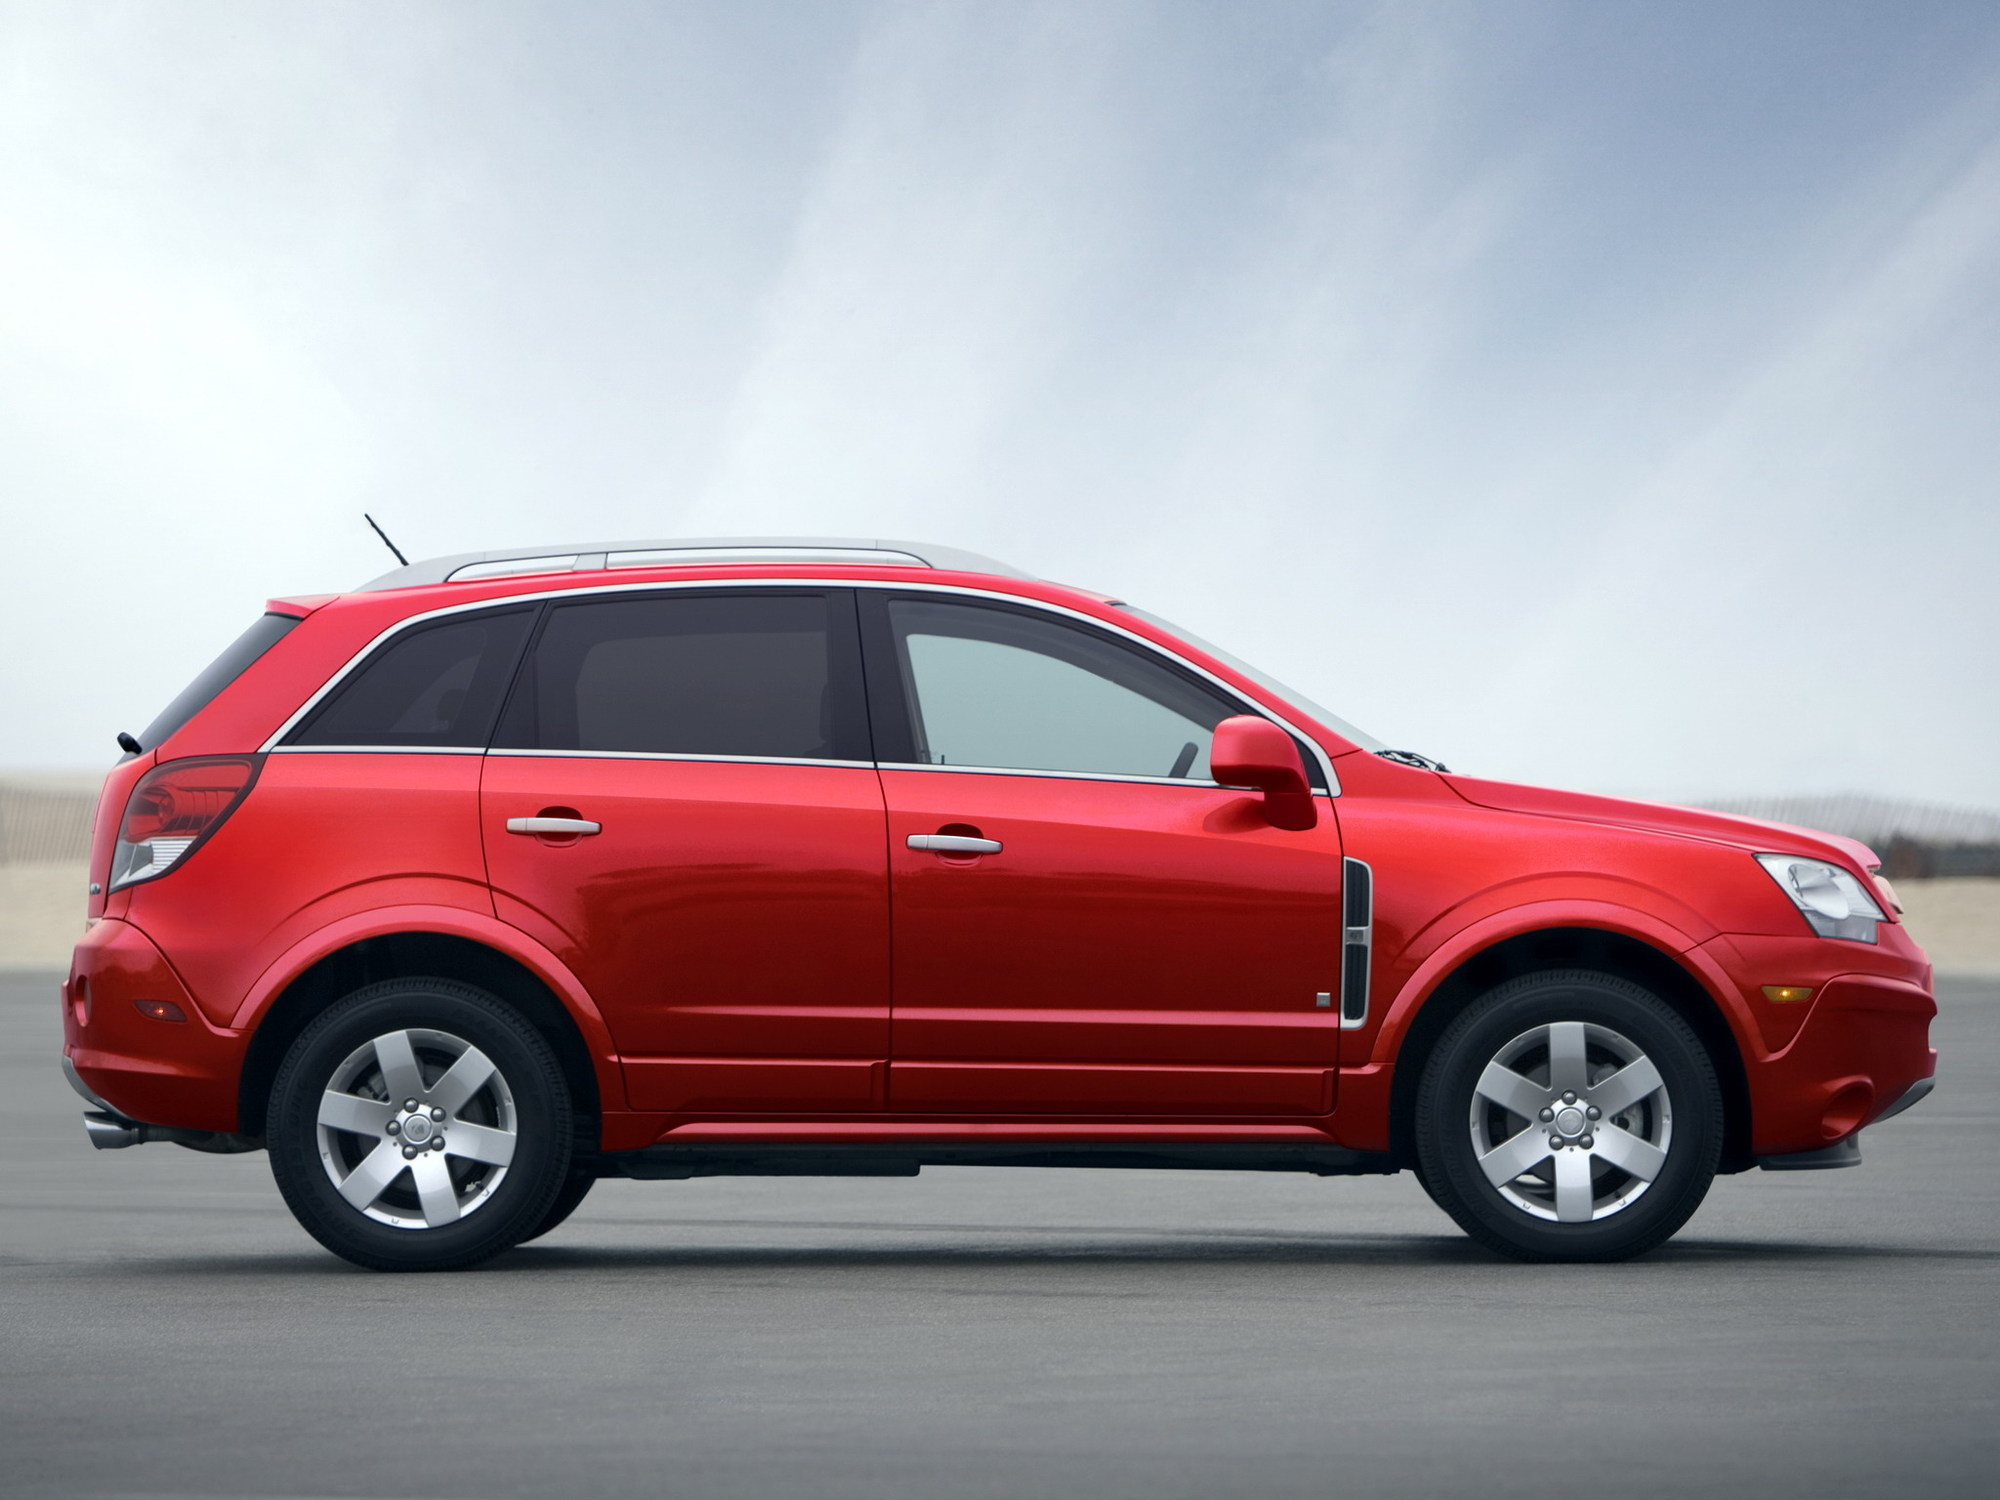 a review of saturn corporation Check out the saturn vue review at caranddrivercom use our car buying guide to research saturn vue prices, specs, photos, videos, and more.